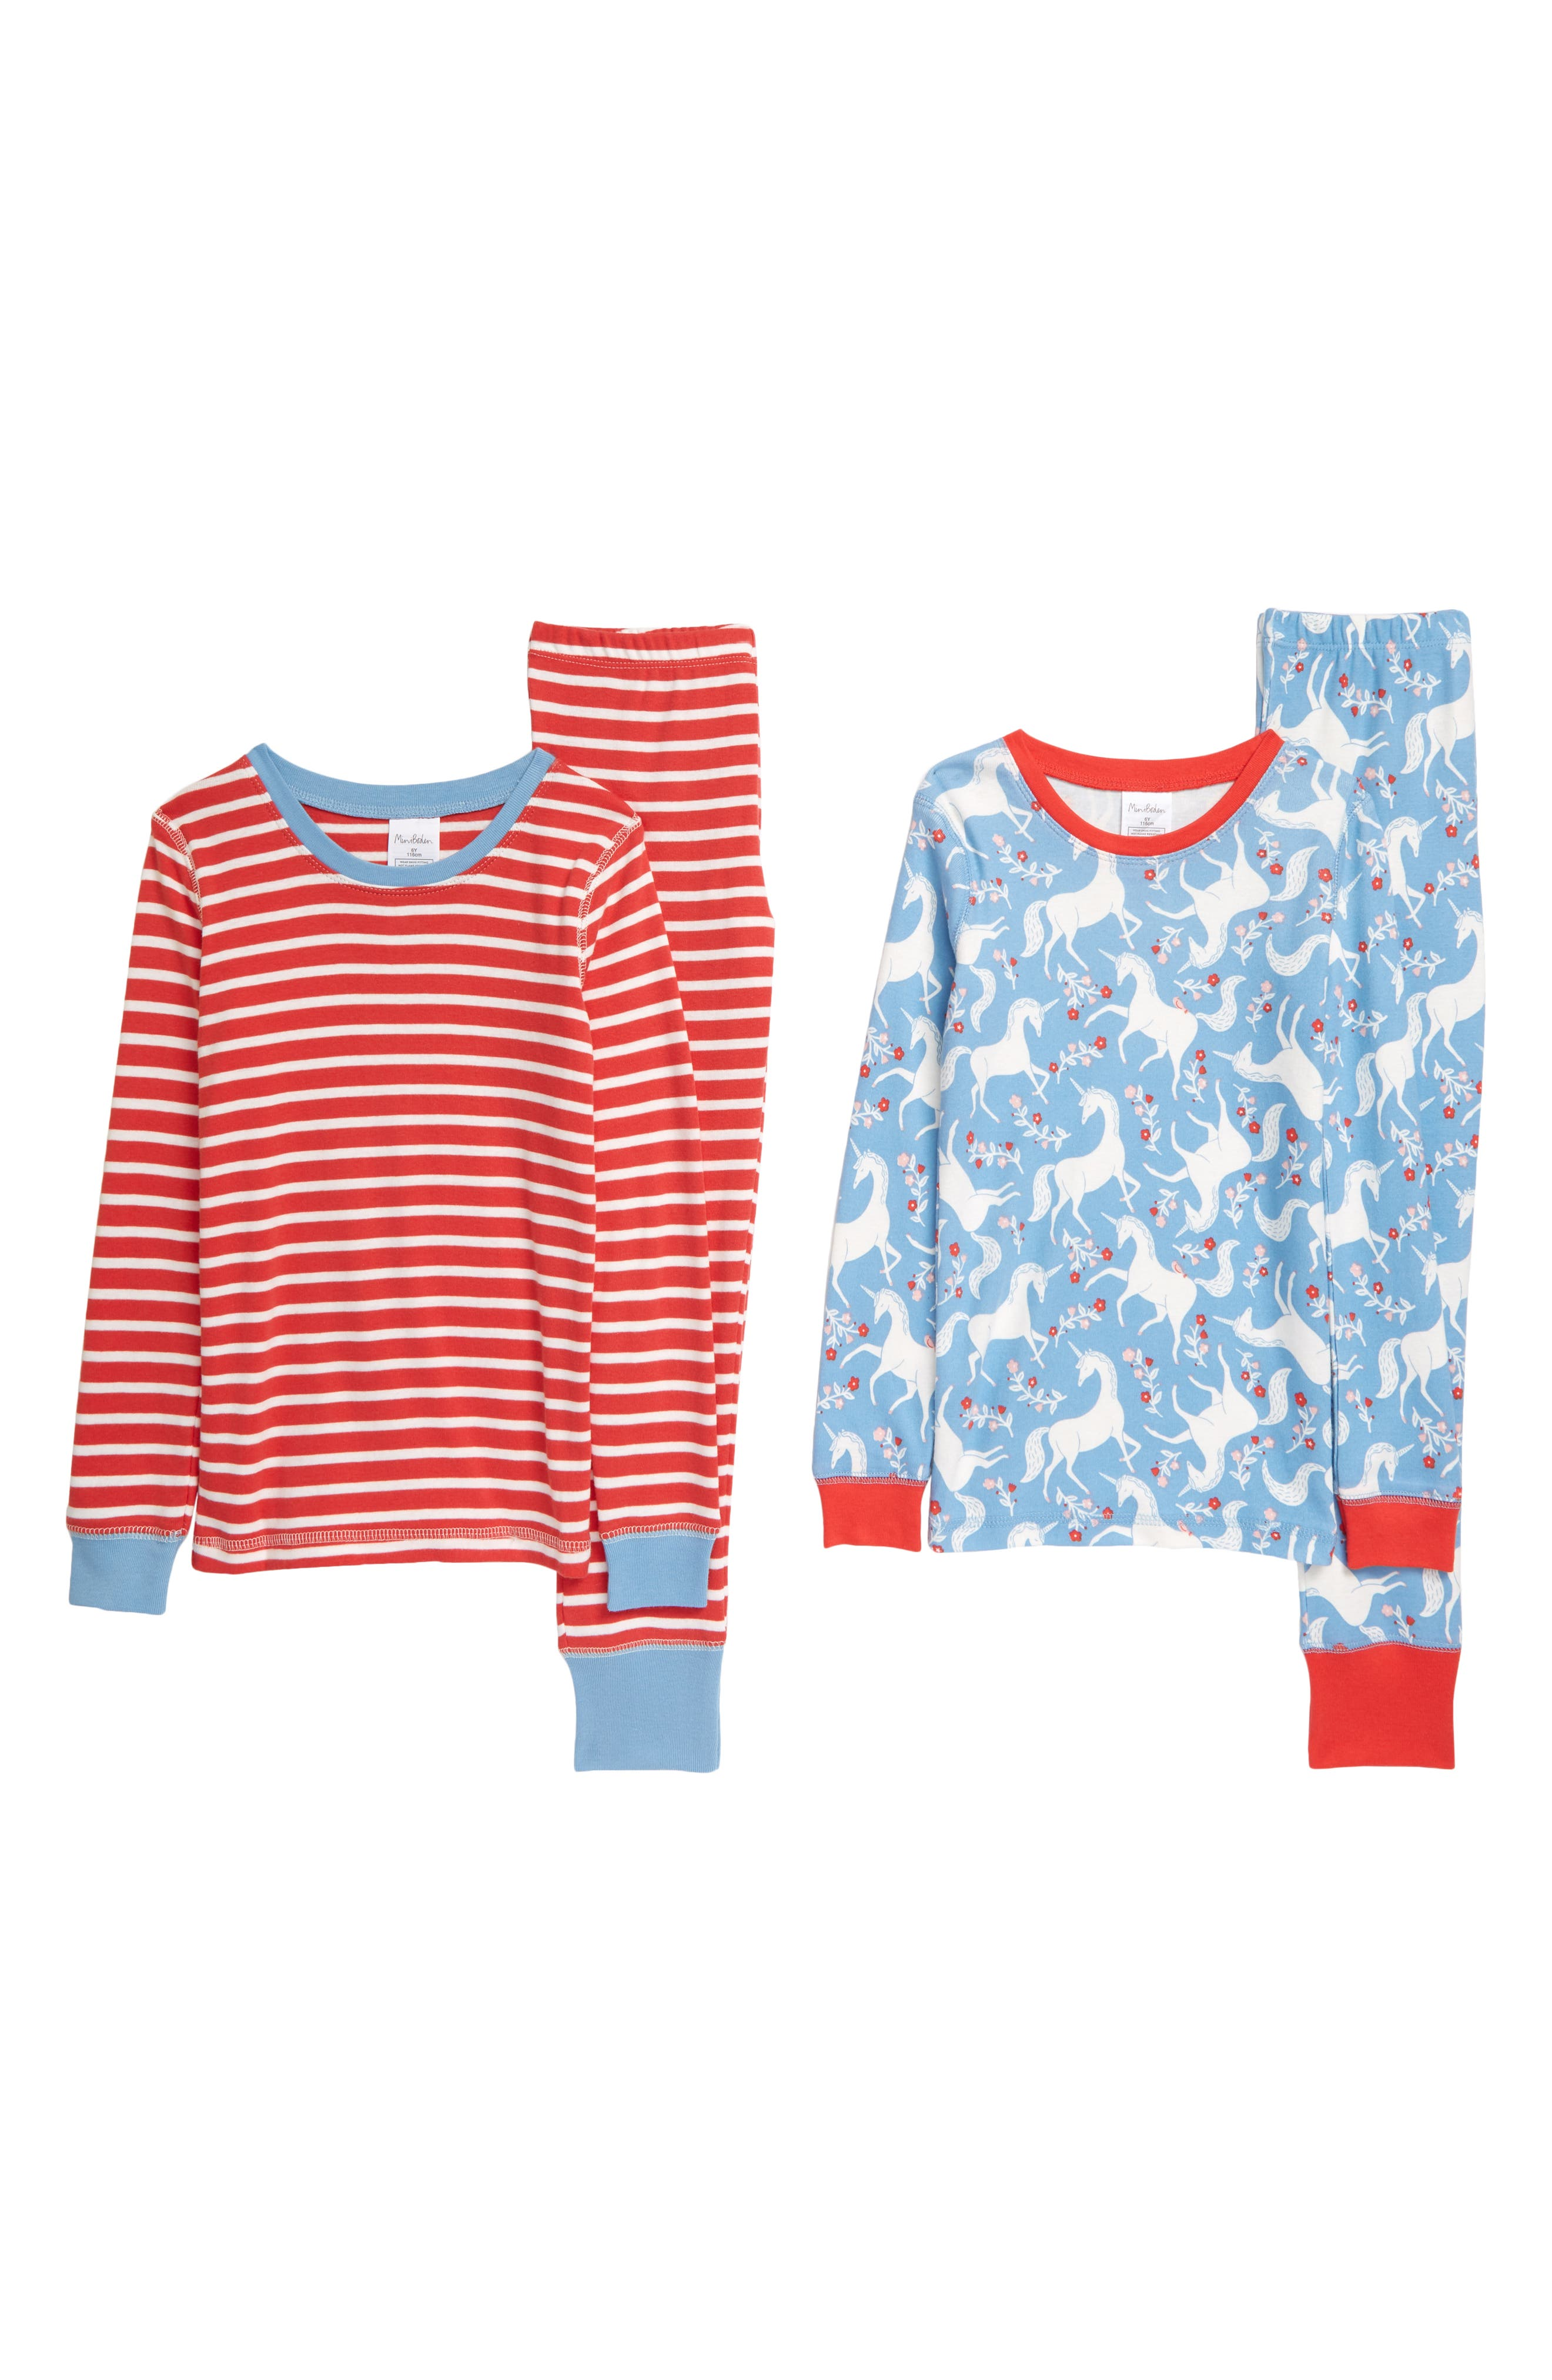 She\\\'ll dream magical dreams with this fun mix-and-match PJ duo featuring pretty unicorns on one pair and classic stripes on the other. Style Name: Mini Boden 2-Pack Kids\\\' Fitted Two-Piece Pajamas (Toddler, Little Girl & Big Girl). Style Number: 6103092. Available in stores.